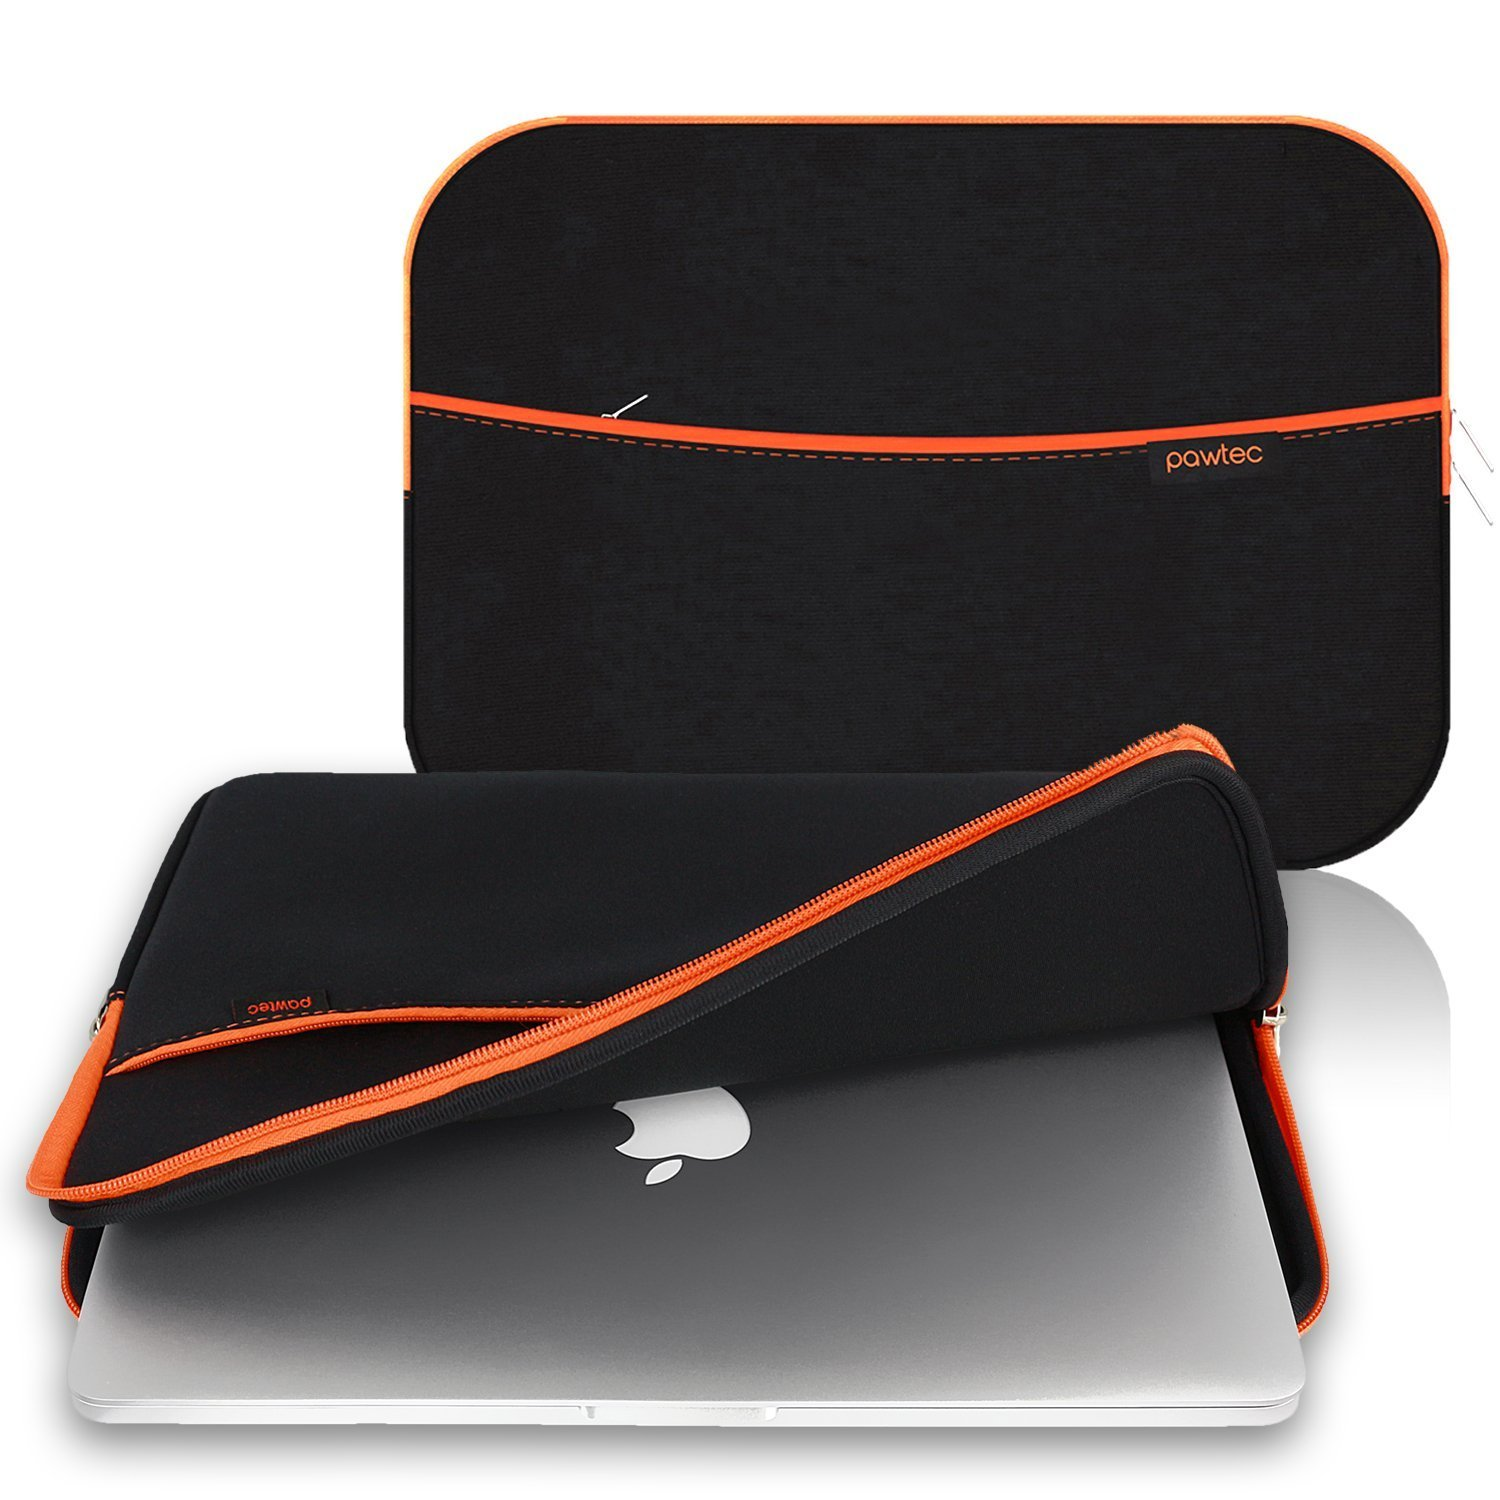 Pawtec MacBook 15-Inch Pro / Retina / Laptop Neoprene Sleeve Protective Storage Carrying Case With Extra Storage Pocket for Accessories and Wall Charger (Black)